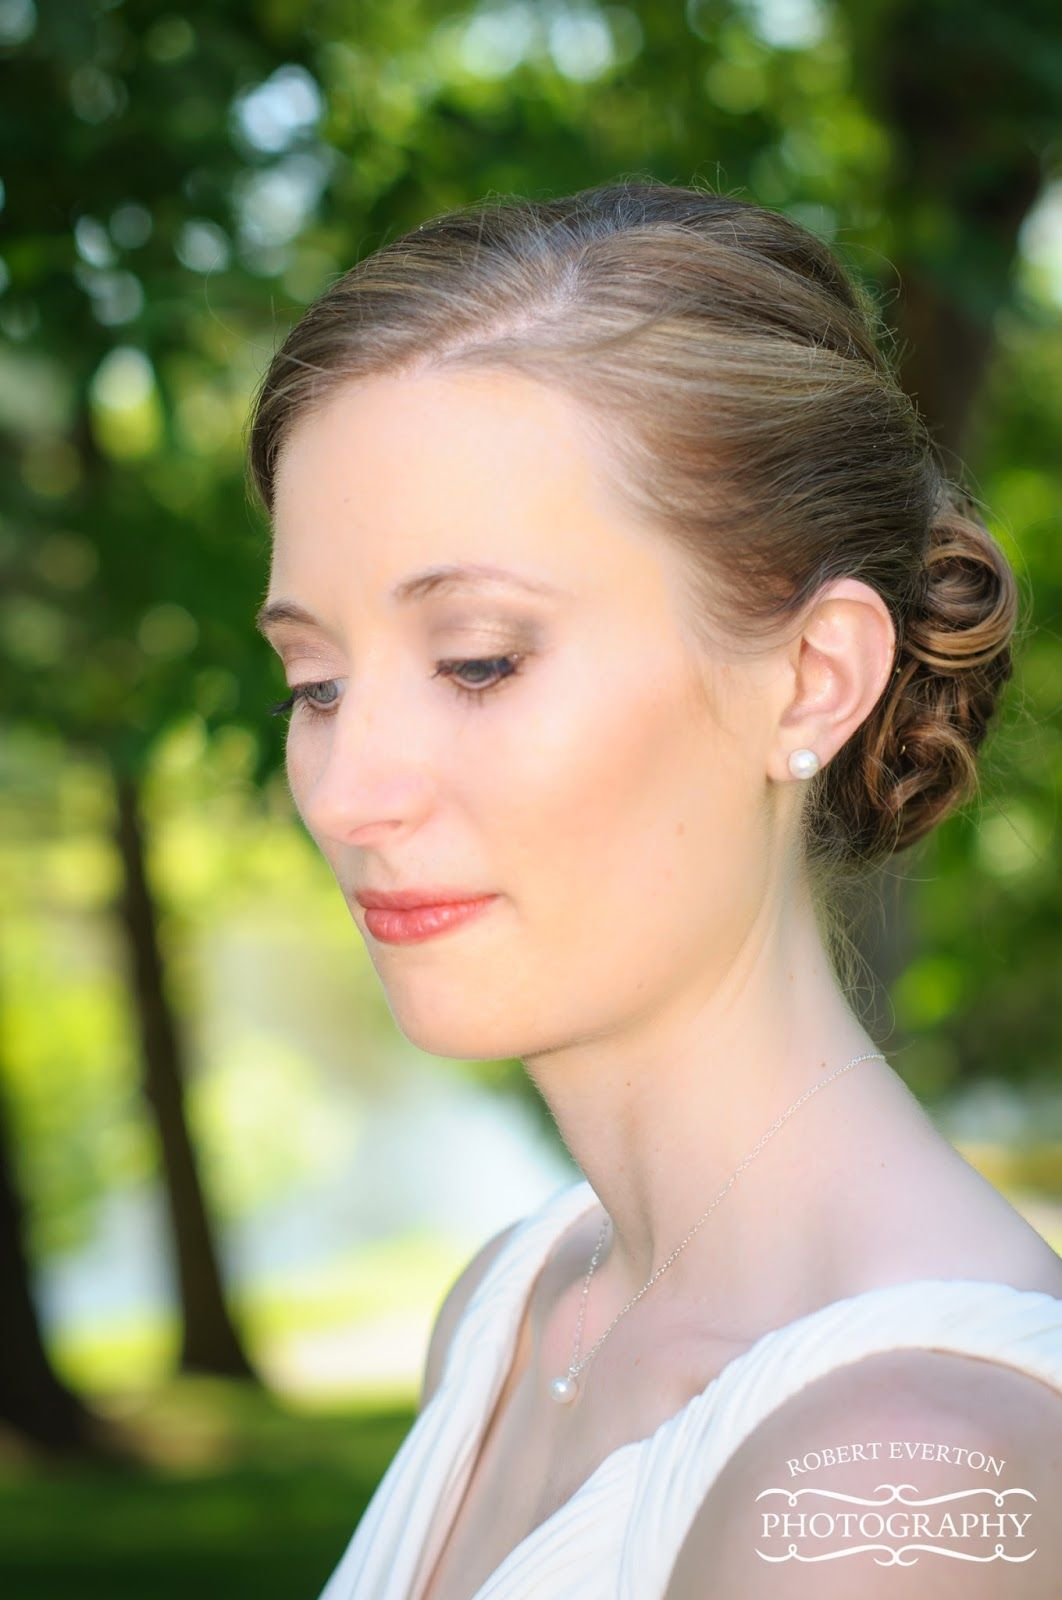 this beautiful bride is going for a natural look with subtle eye